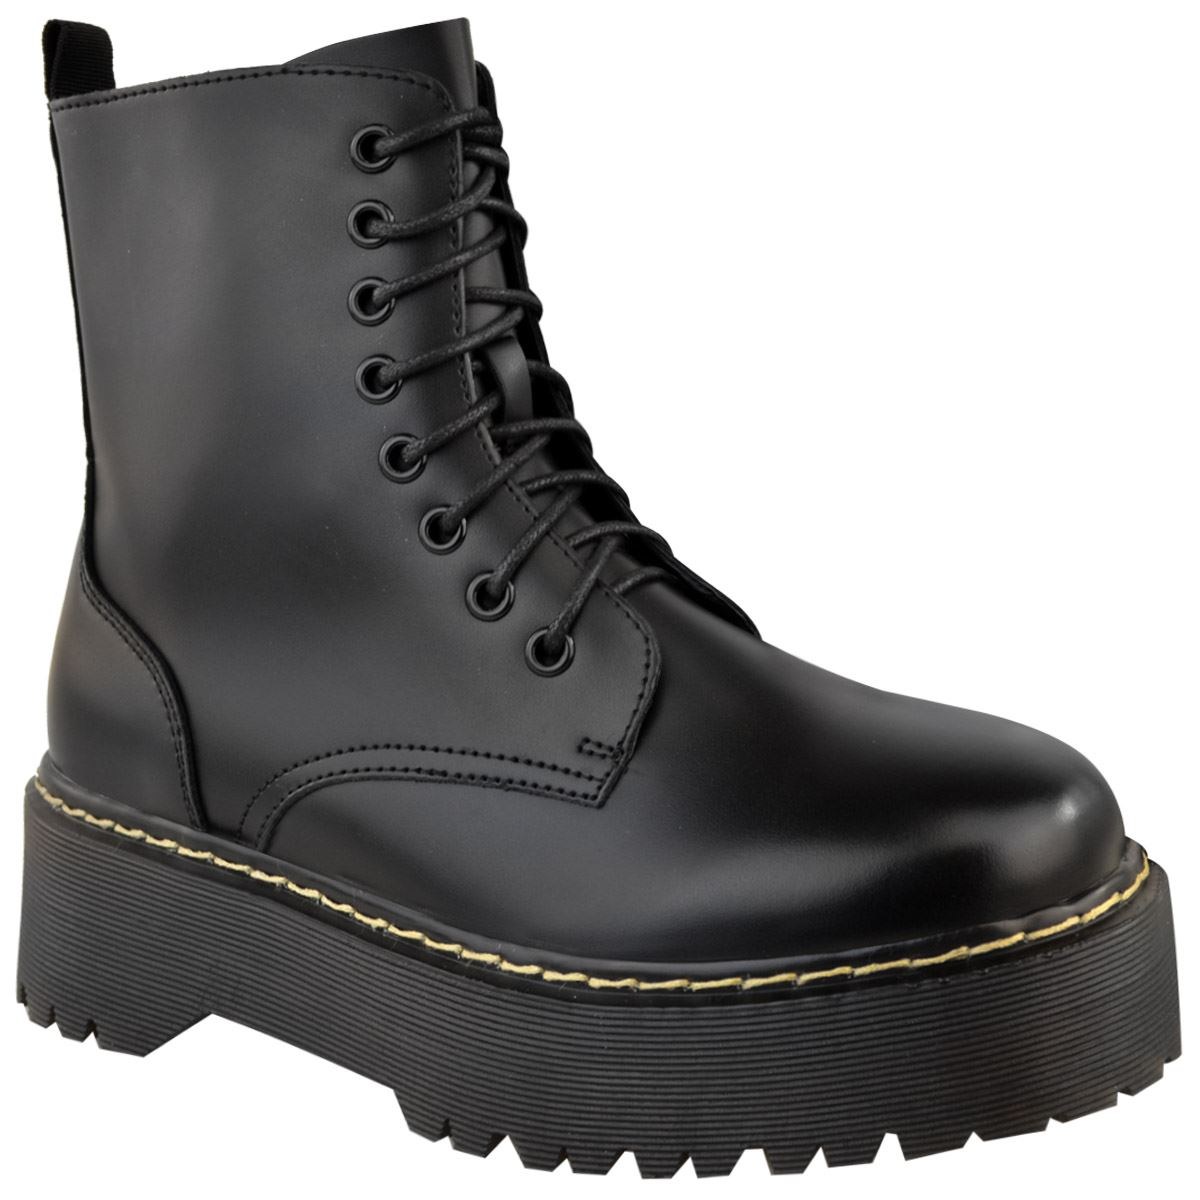 Womens-Ladies-Doc-Chunky-Lace-Up-Ankle-Boots-Platform-Icon-Retro-Goth-Punk-Black thumbnail 3